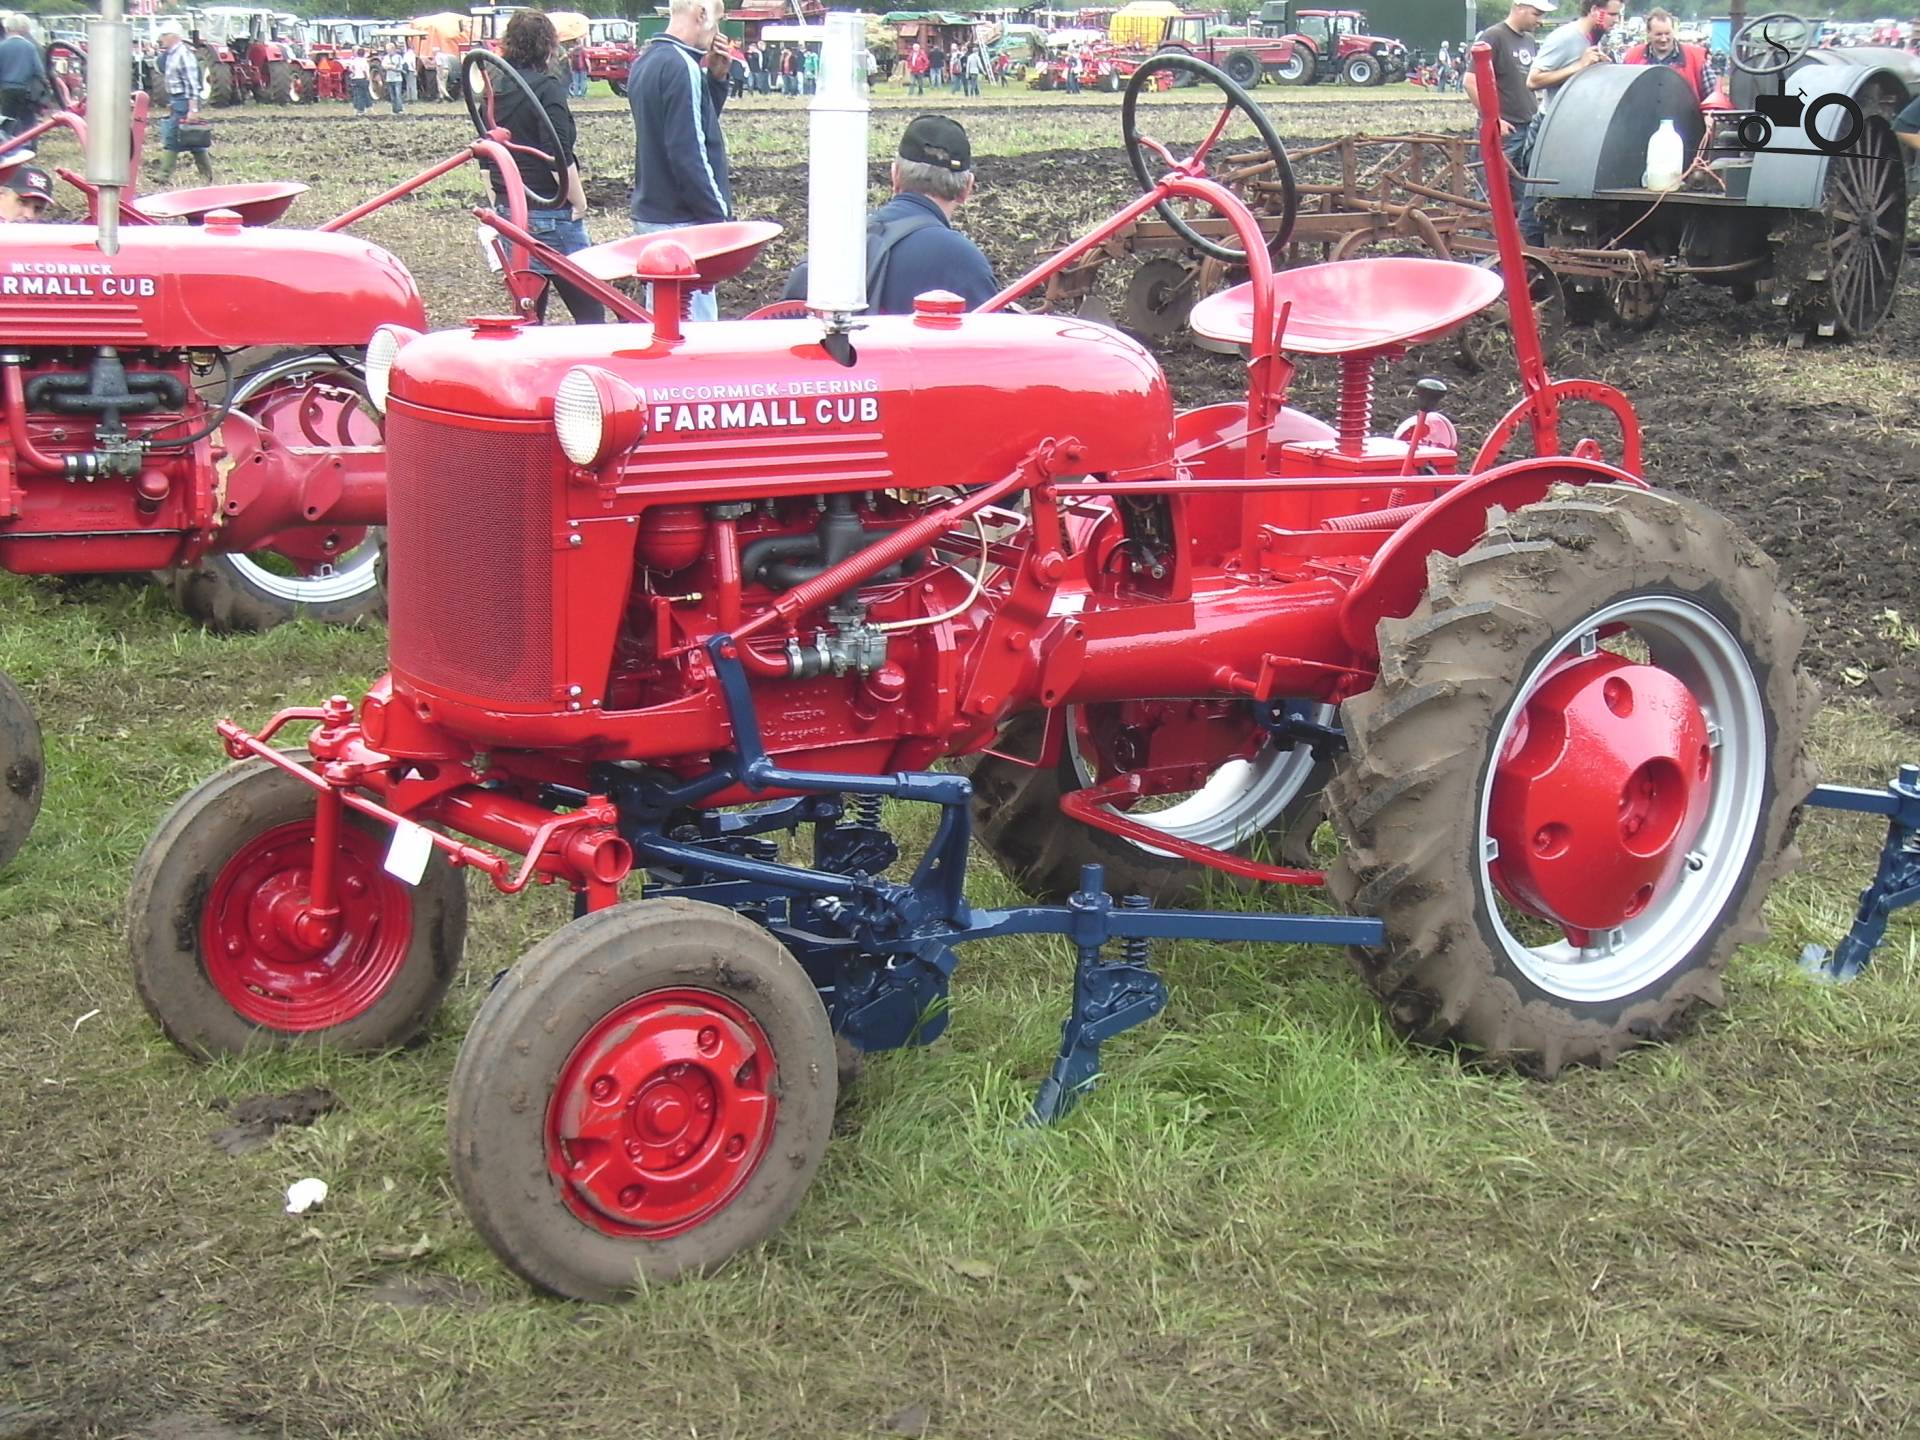 Farmall Cub Magneto Diagram Wire Data Schema H With 12 Volt Conversion Wiring 1950 Bing Images 6 1949